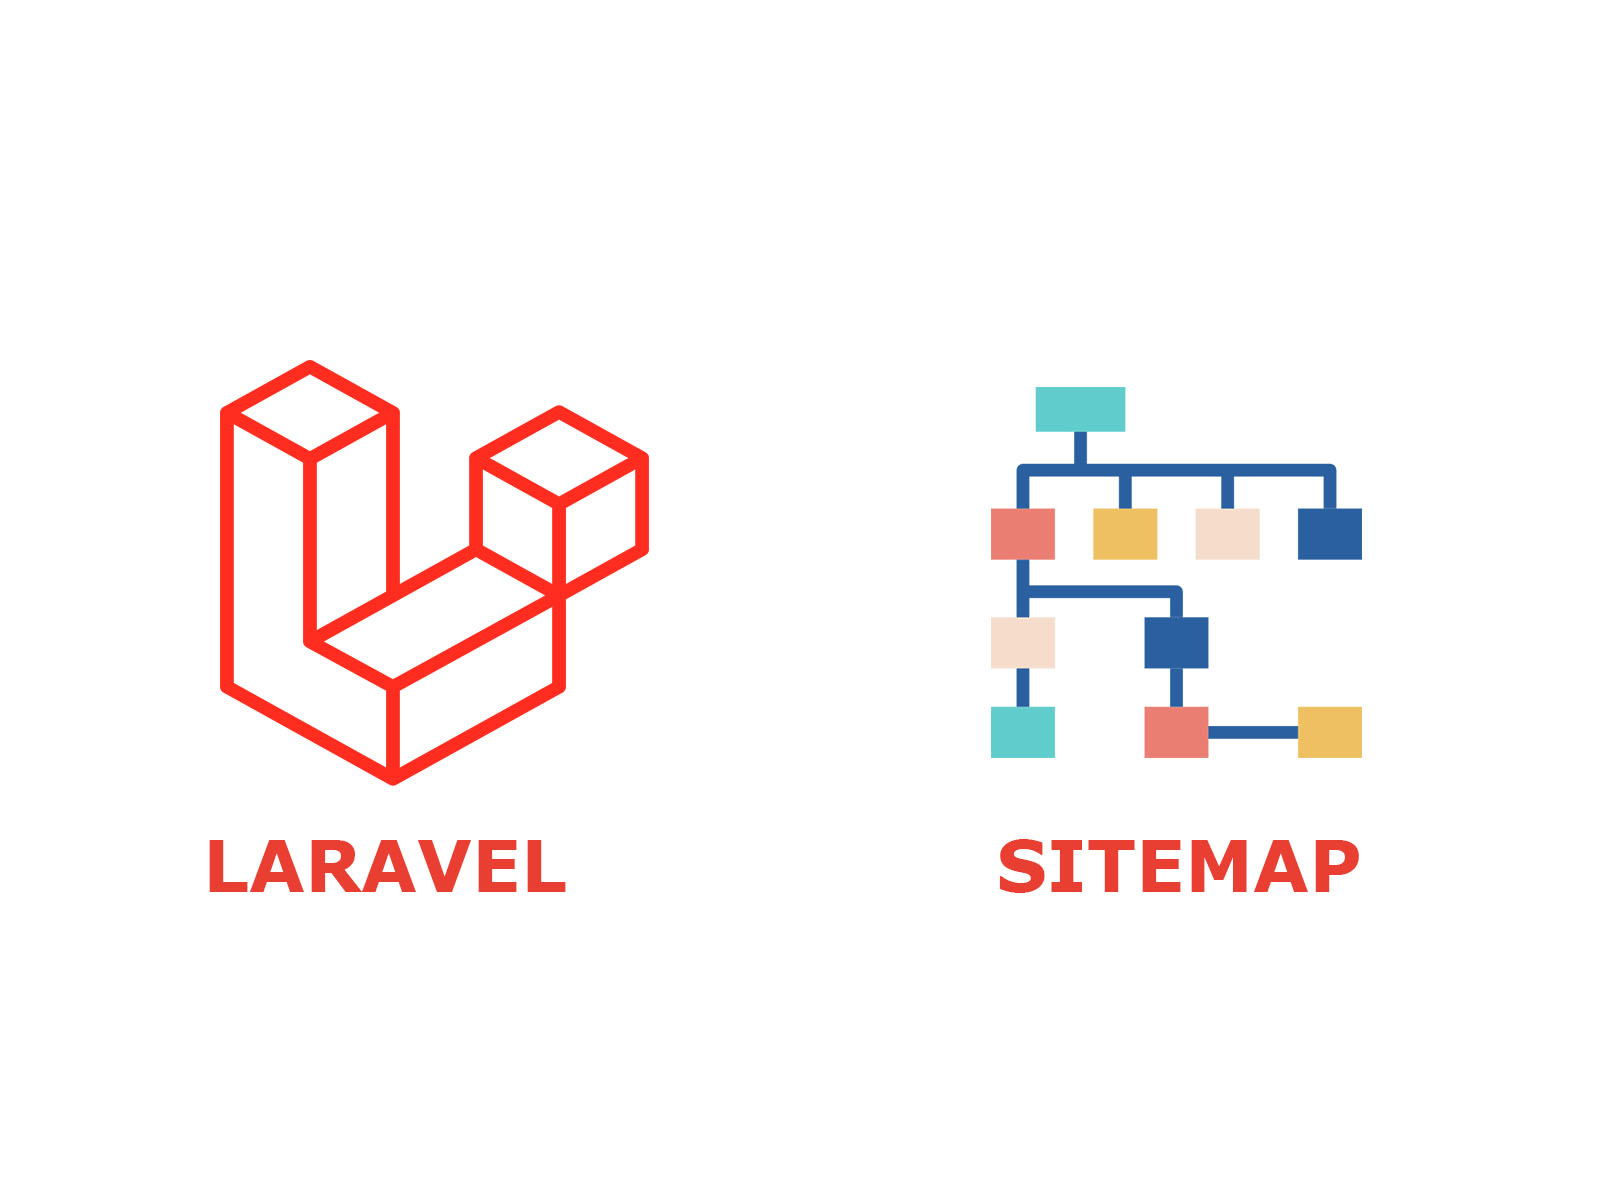 Generate sitemap with laravel